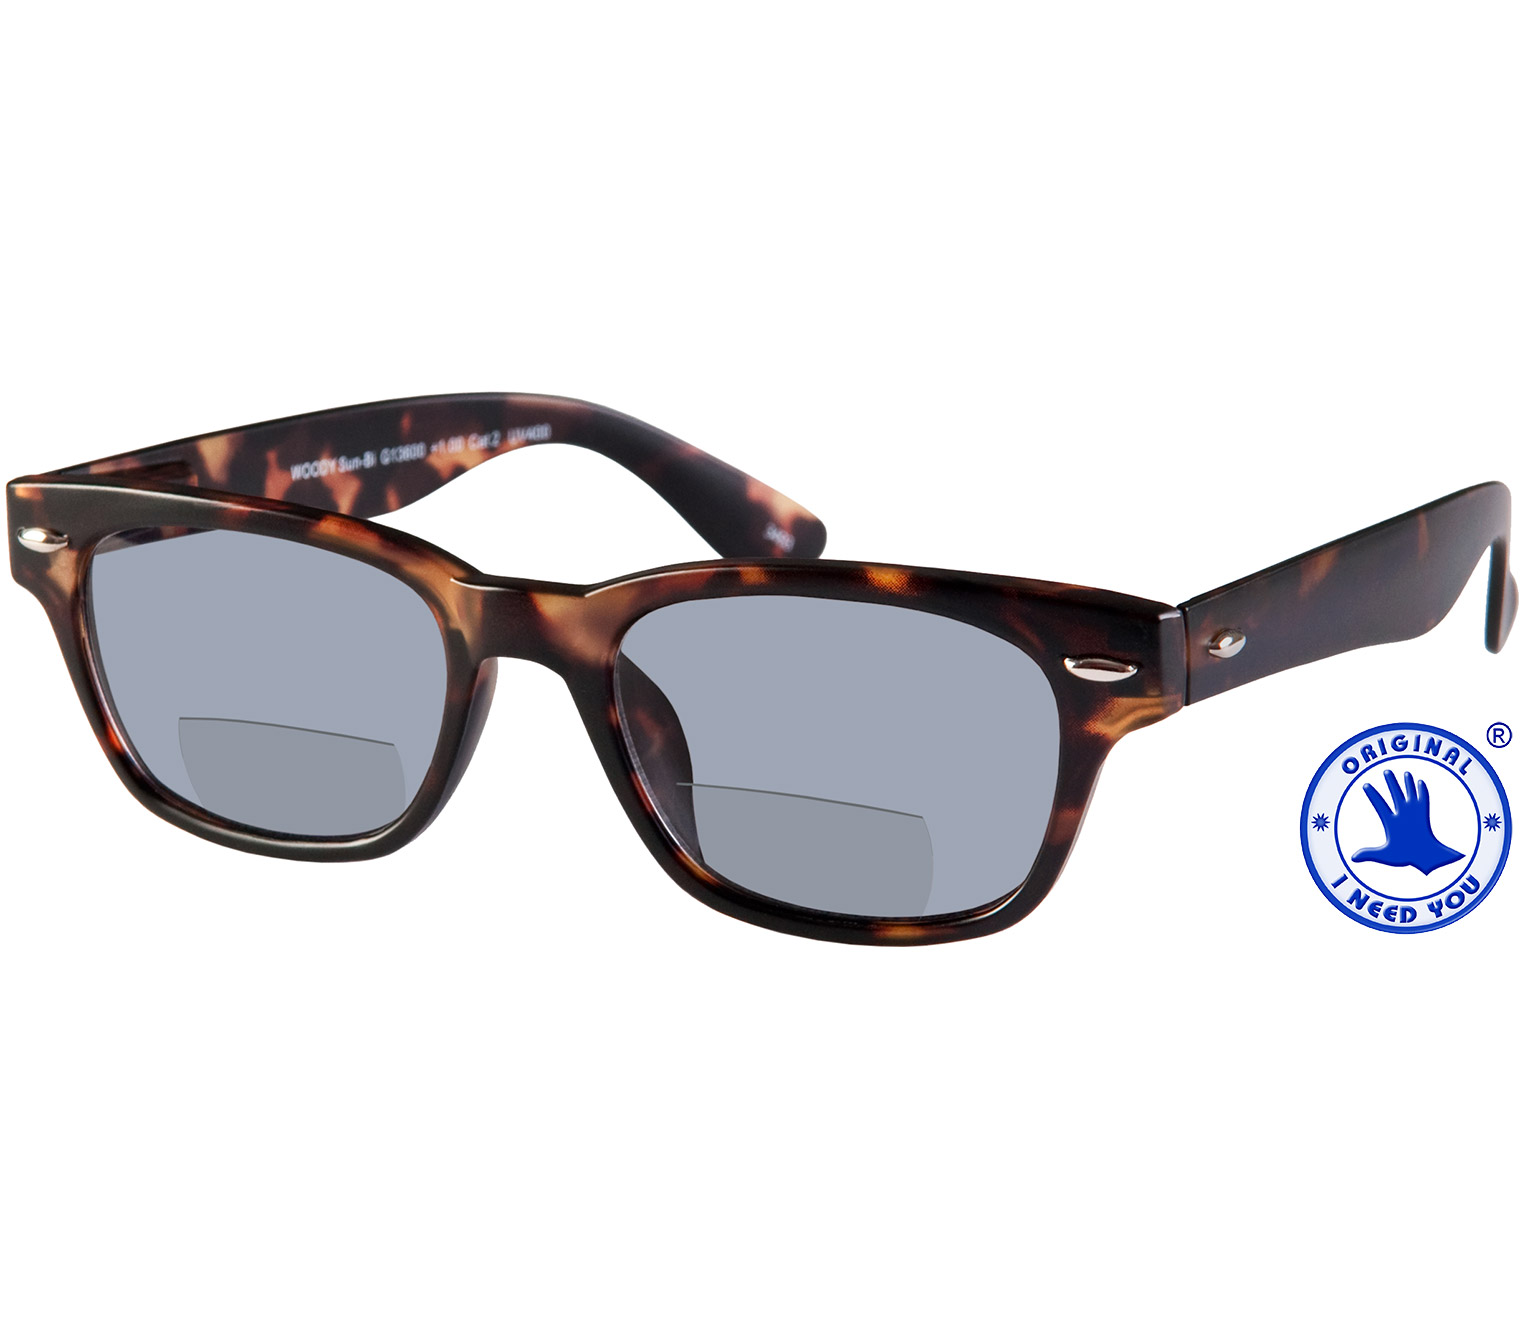 Main Image (Angle) - Skyline (Tortoiseshell) Bifocal Sun Readers